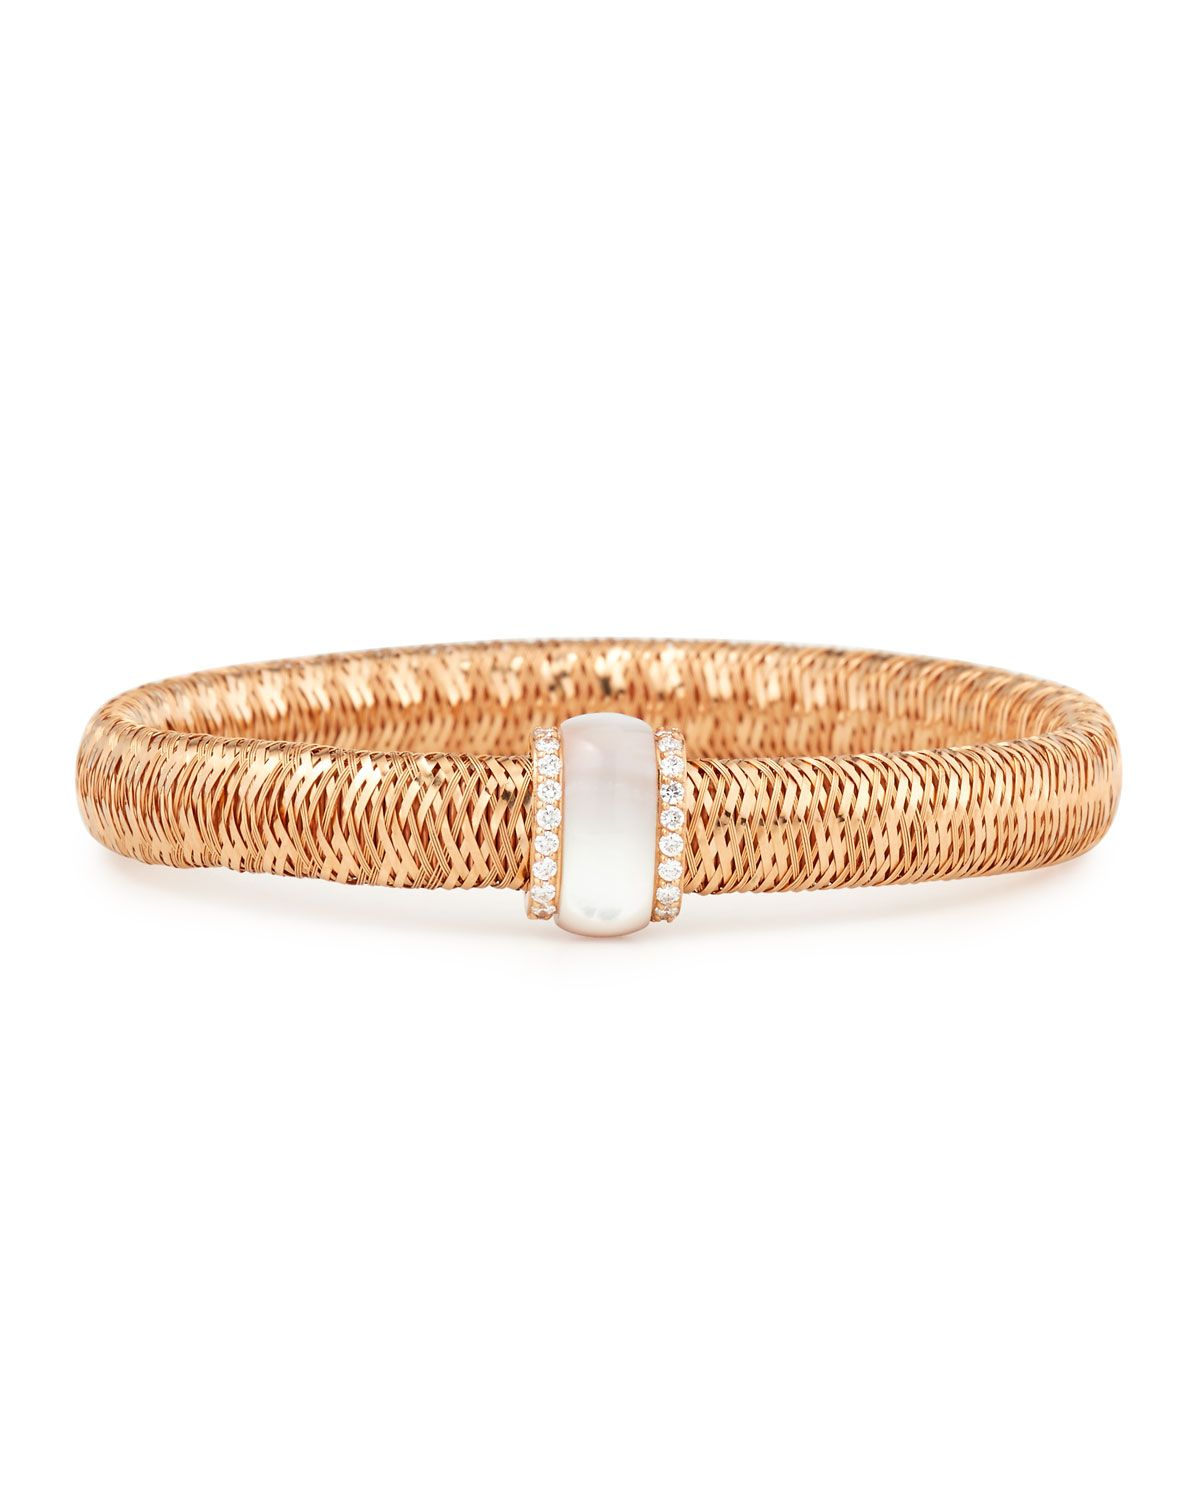 Primavera 18K Rose Gold Mother-of-Pearl & Diamond Station Bracelet - Robert Coin